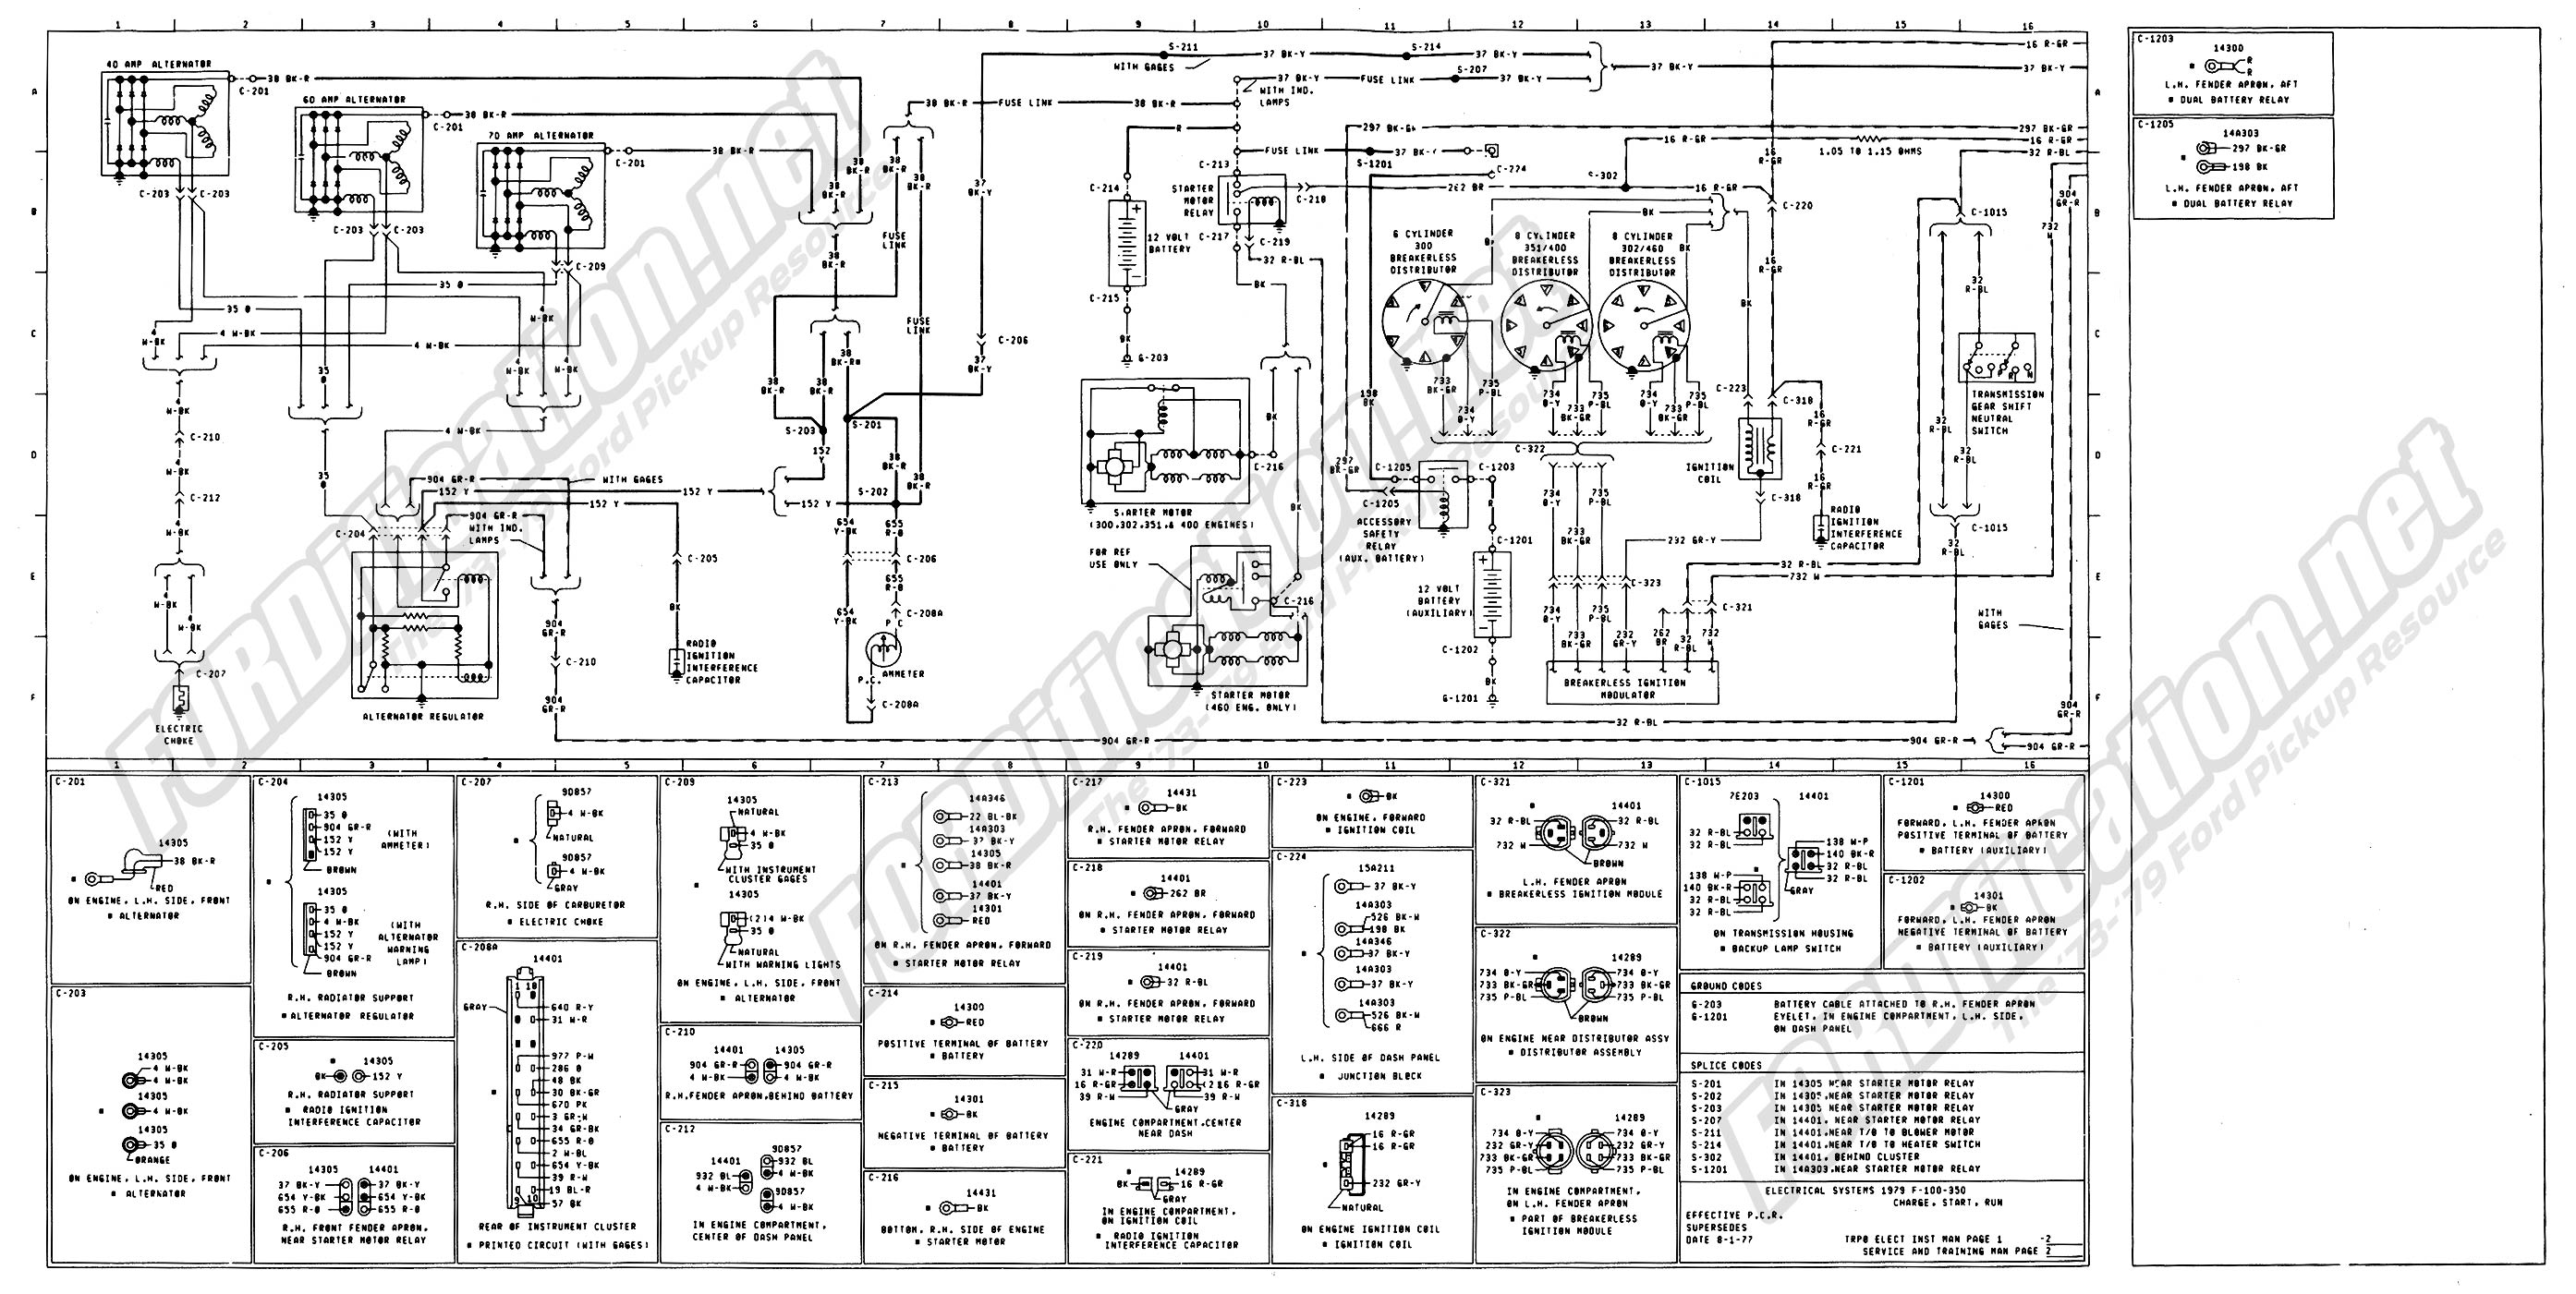 wiring_79master_2of9 1973 1979 ford truck wiring diagrams & schematics fordification net 1995 ford f150 wiring schematics at n-0.co